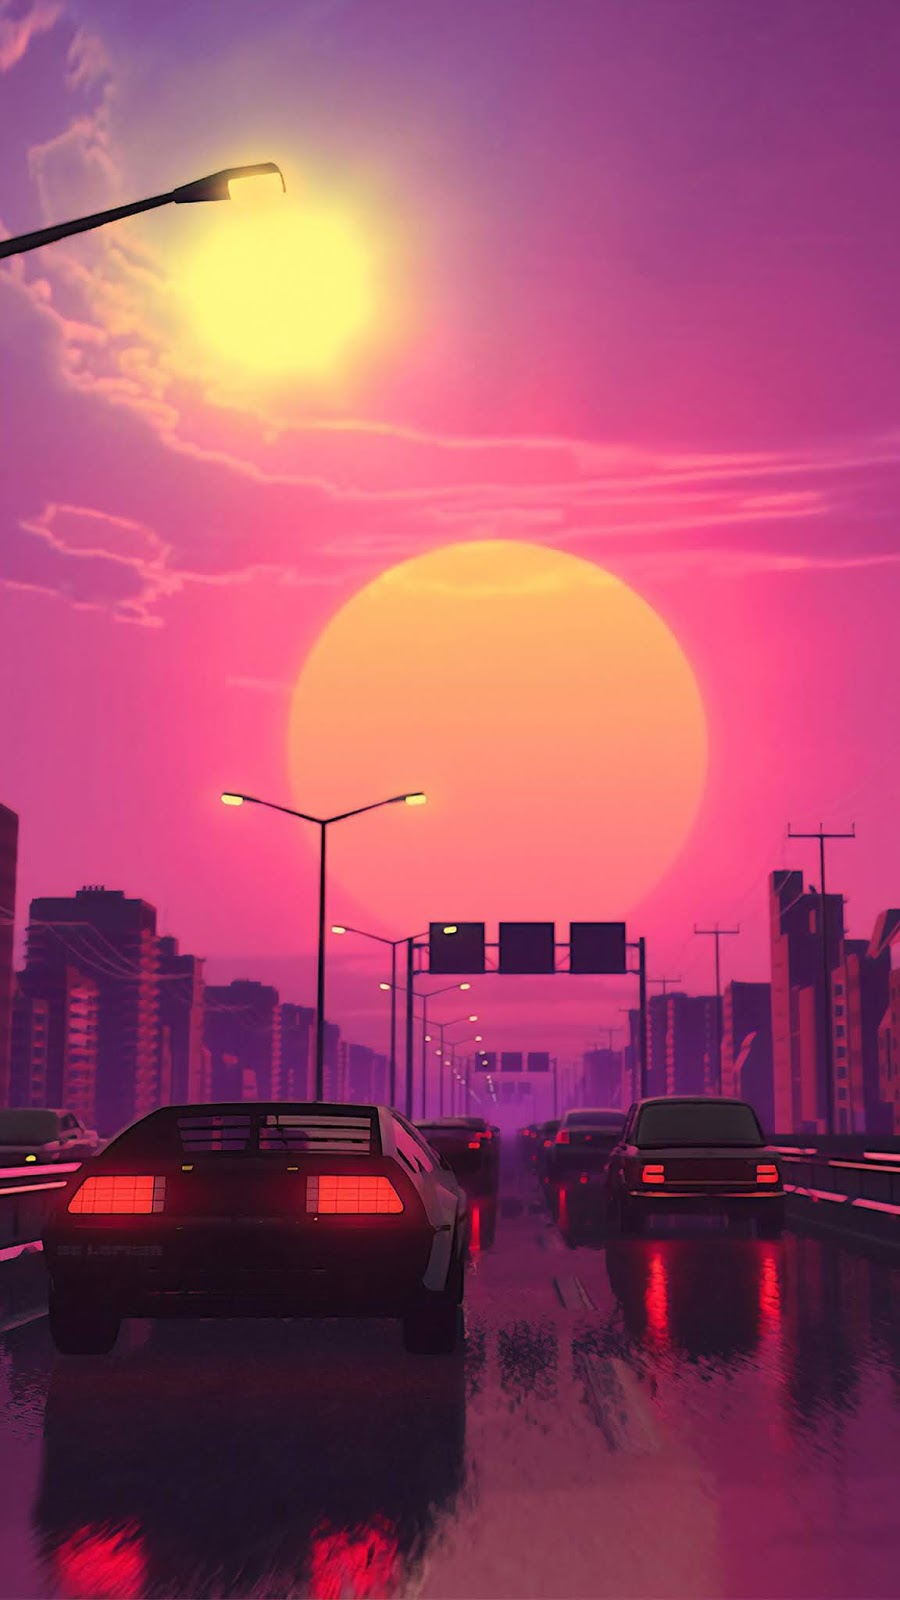 Vaporwave Sunset